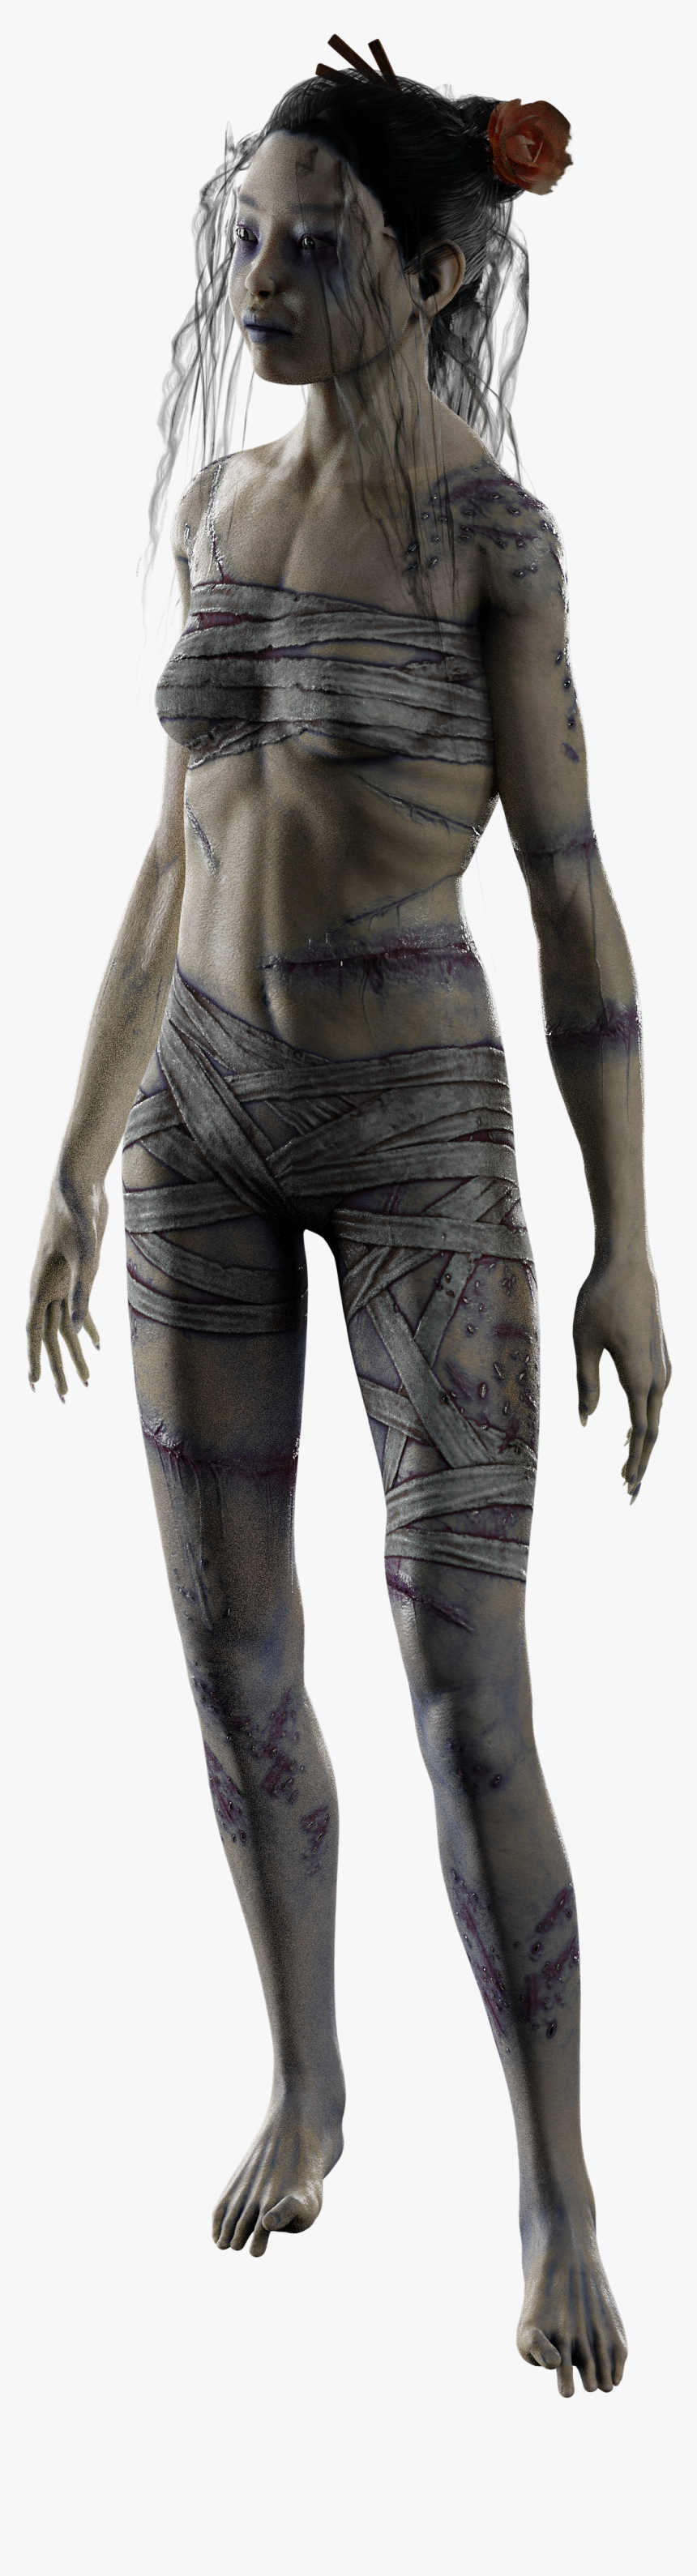 Dead By Daylight Rin Yamaoka Human, HD Png Download, Free Download